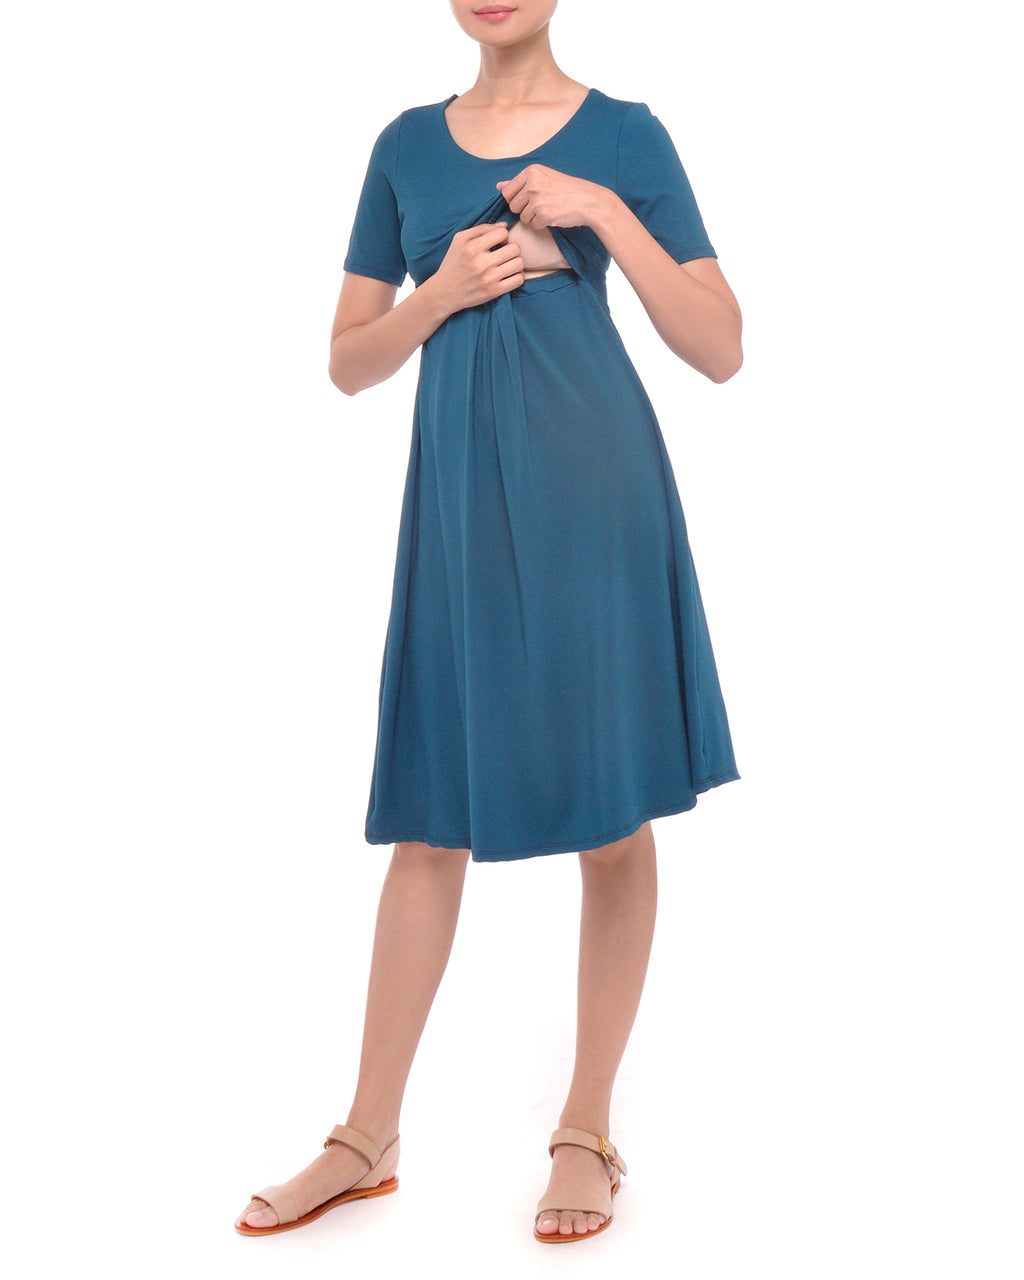 S/S Cecilia Nursing Dress